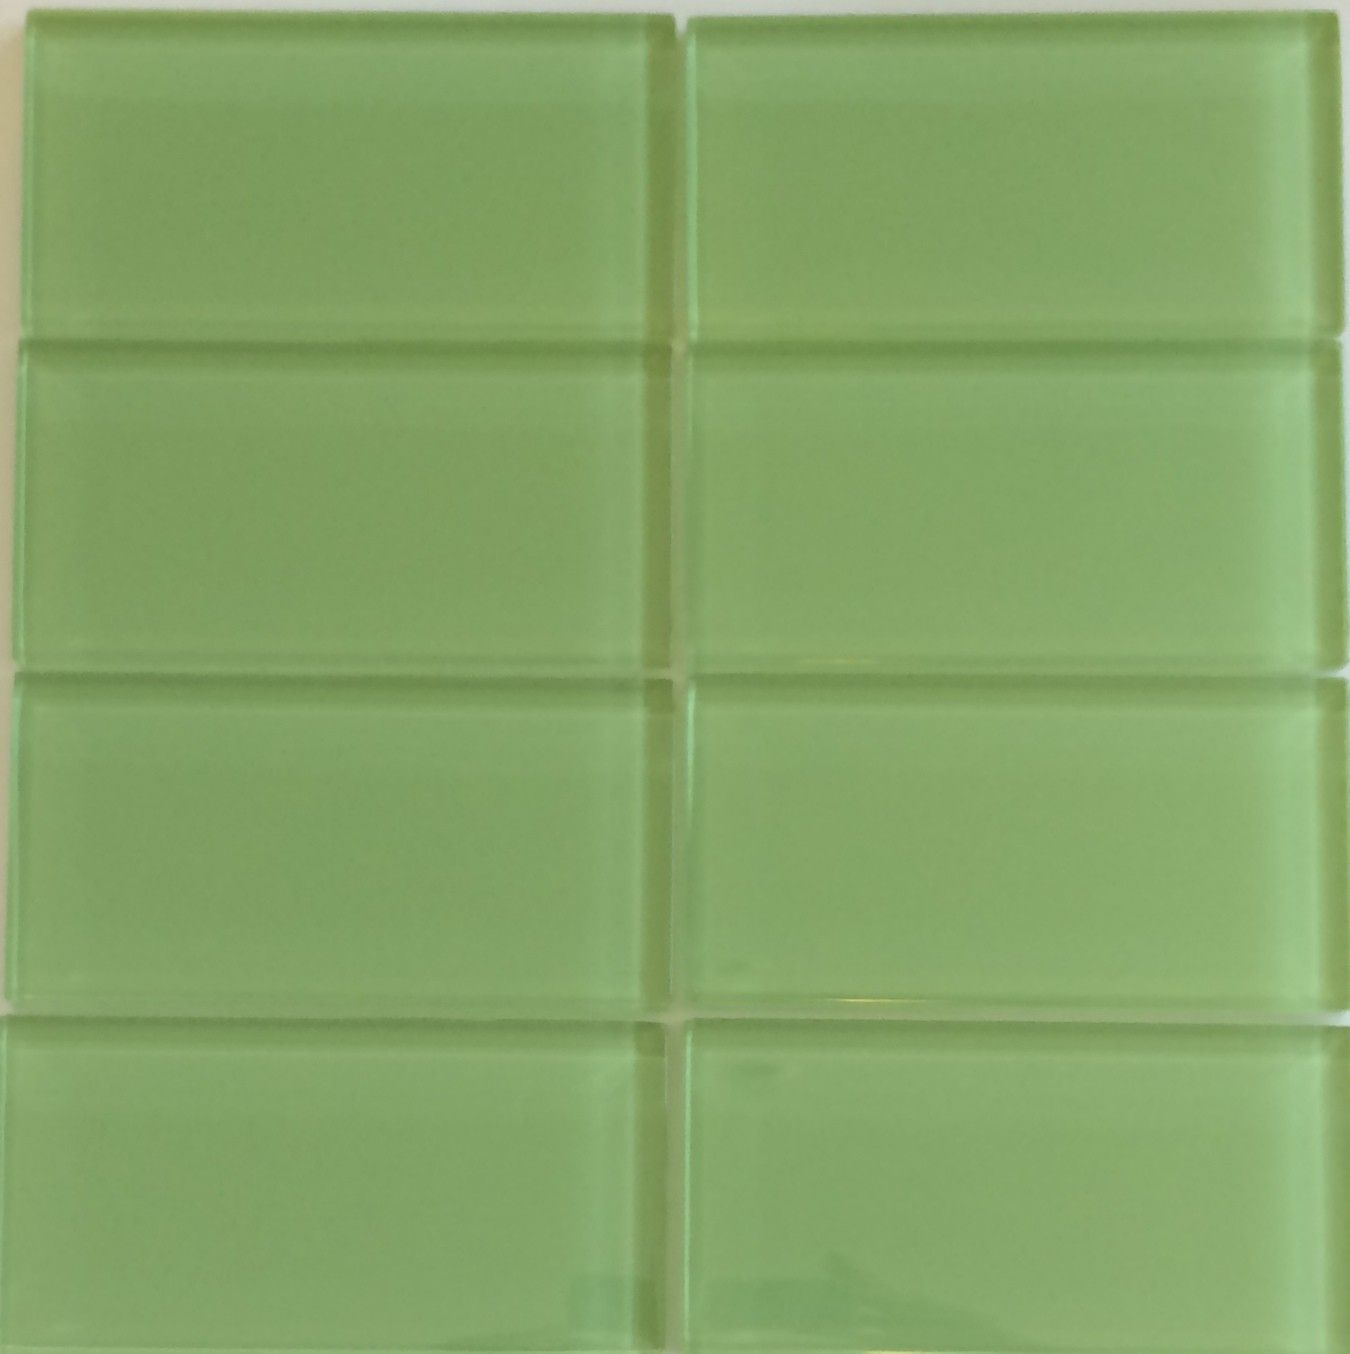 Soft green glass subway tile in wasabi modwalls lush 3x6 tile soft green glass subway tile in wasabi modwalls lush 3x6 tile modwalls tile dailygadgetfo Image collections